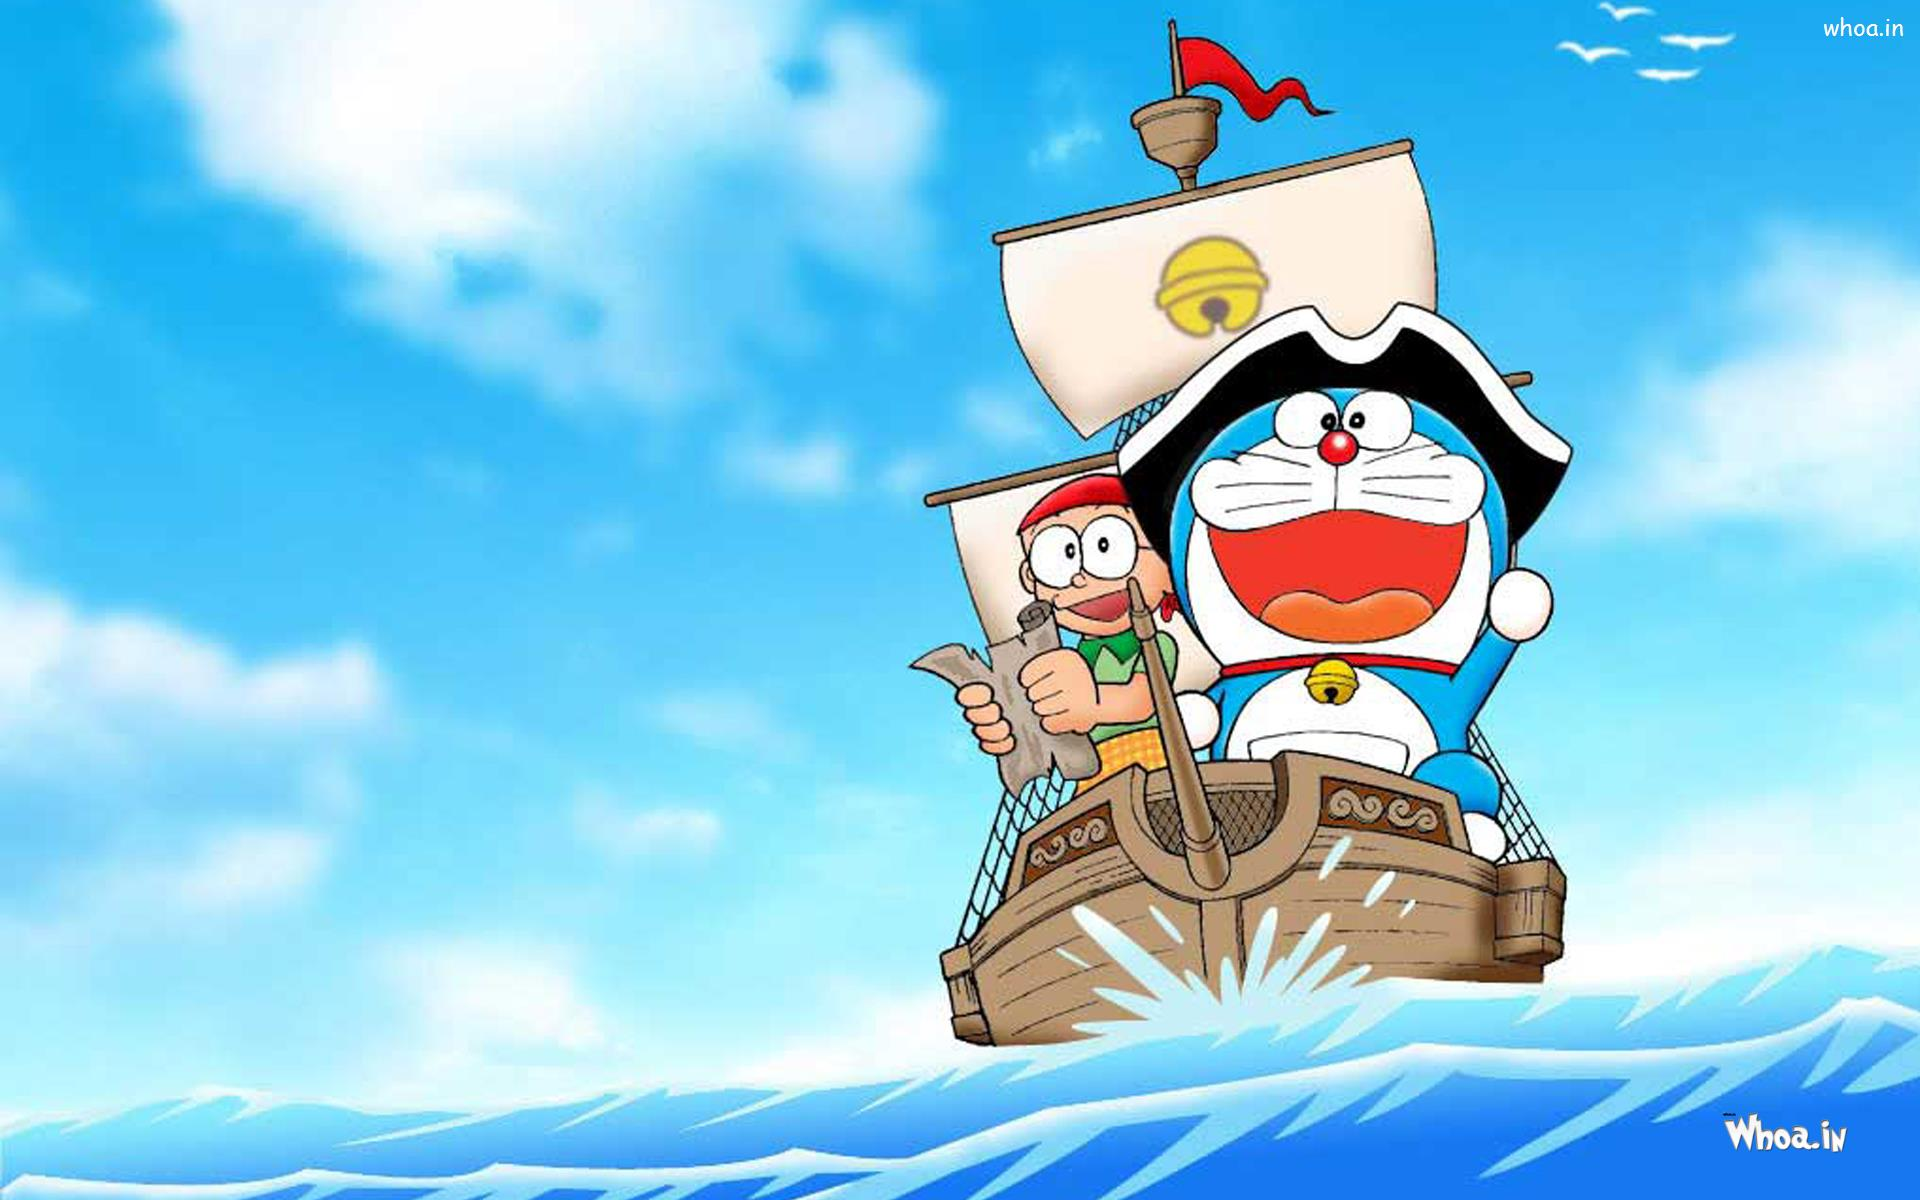 Download wallpaper doraemon free - Doraemon Enjoy Boating With Other Character Hd Wallpaper